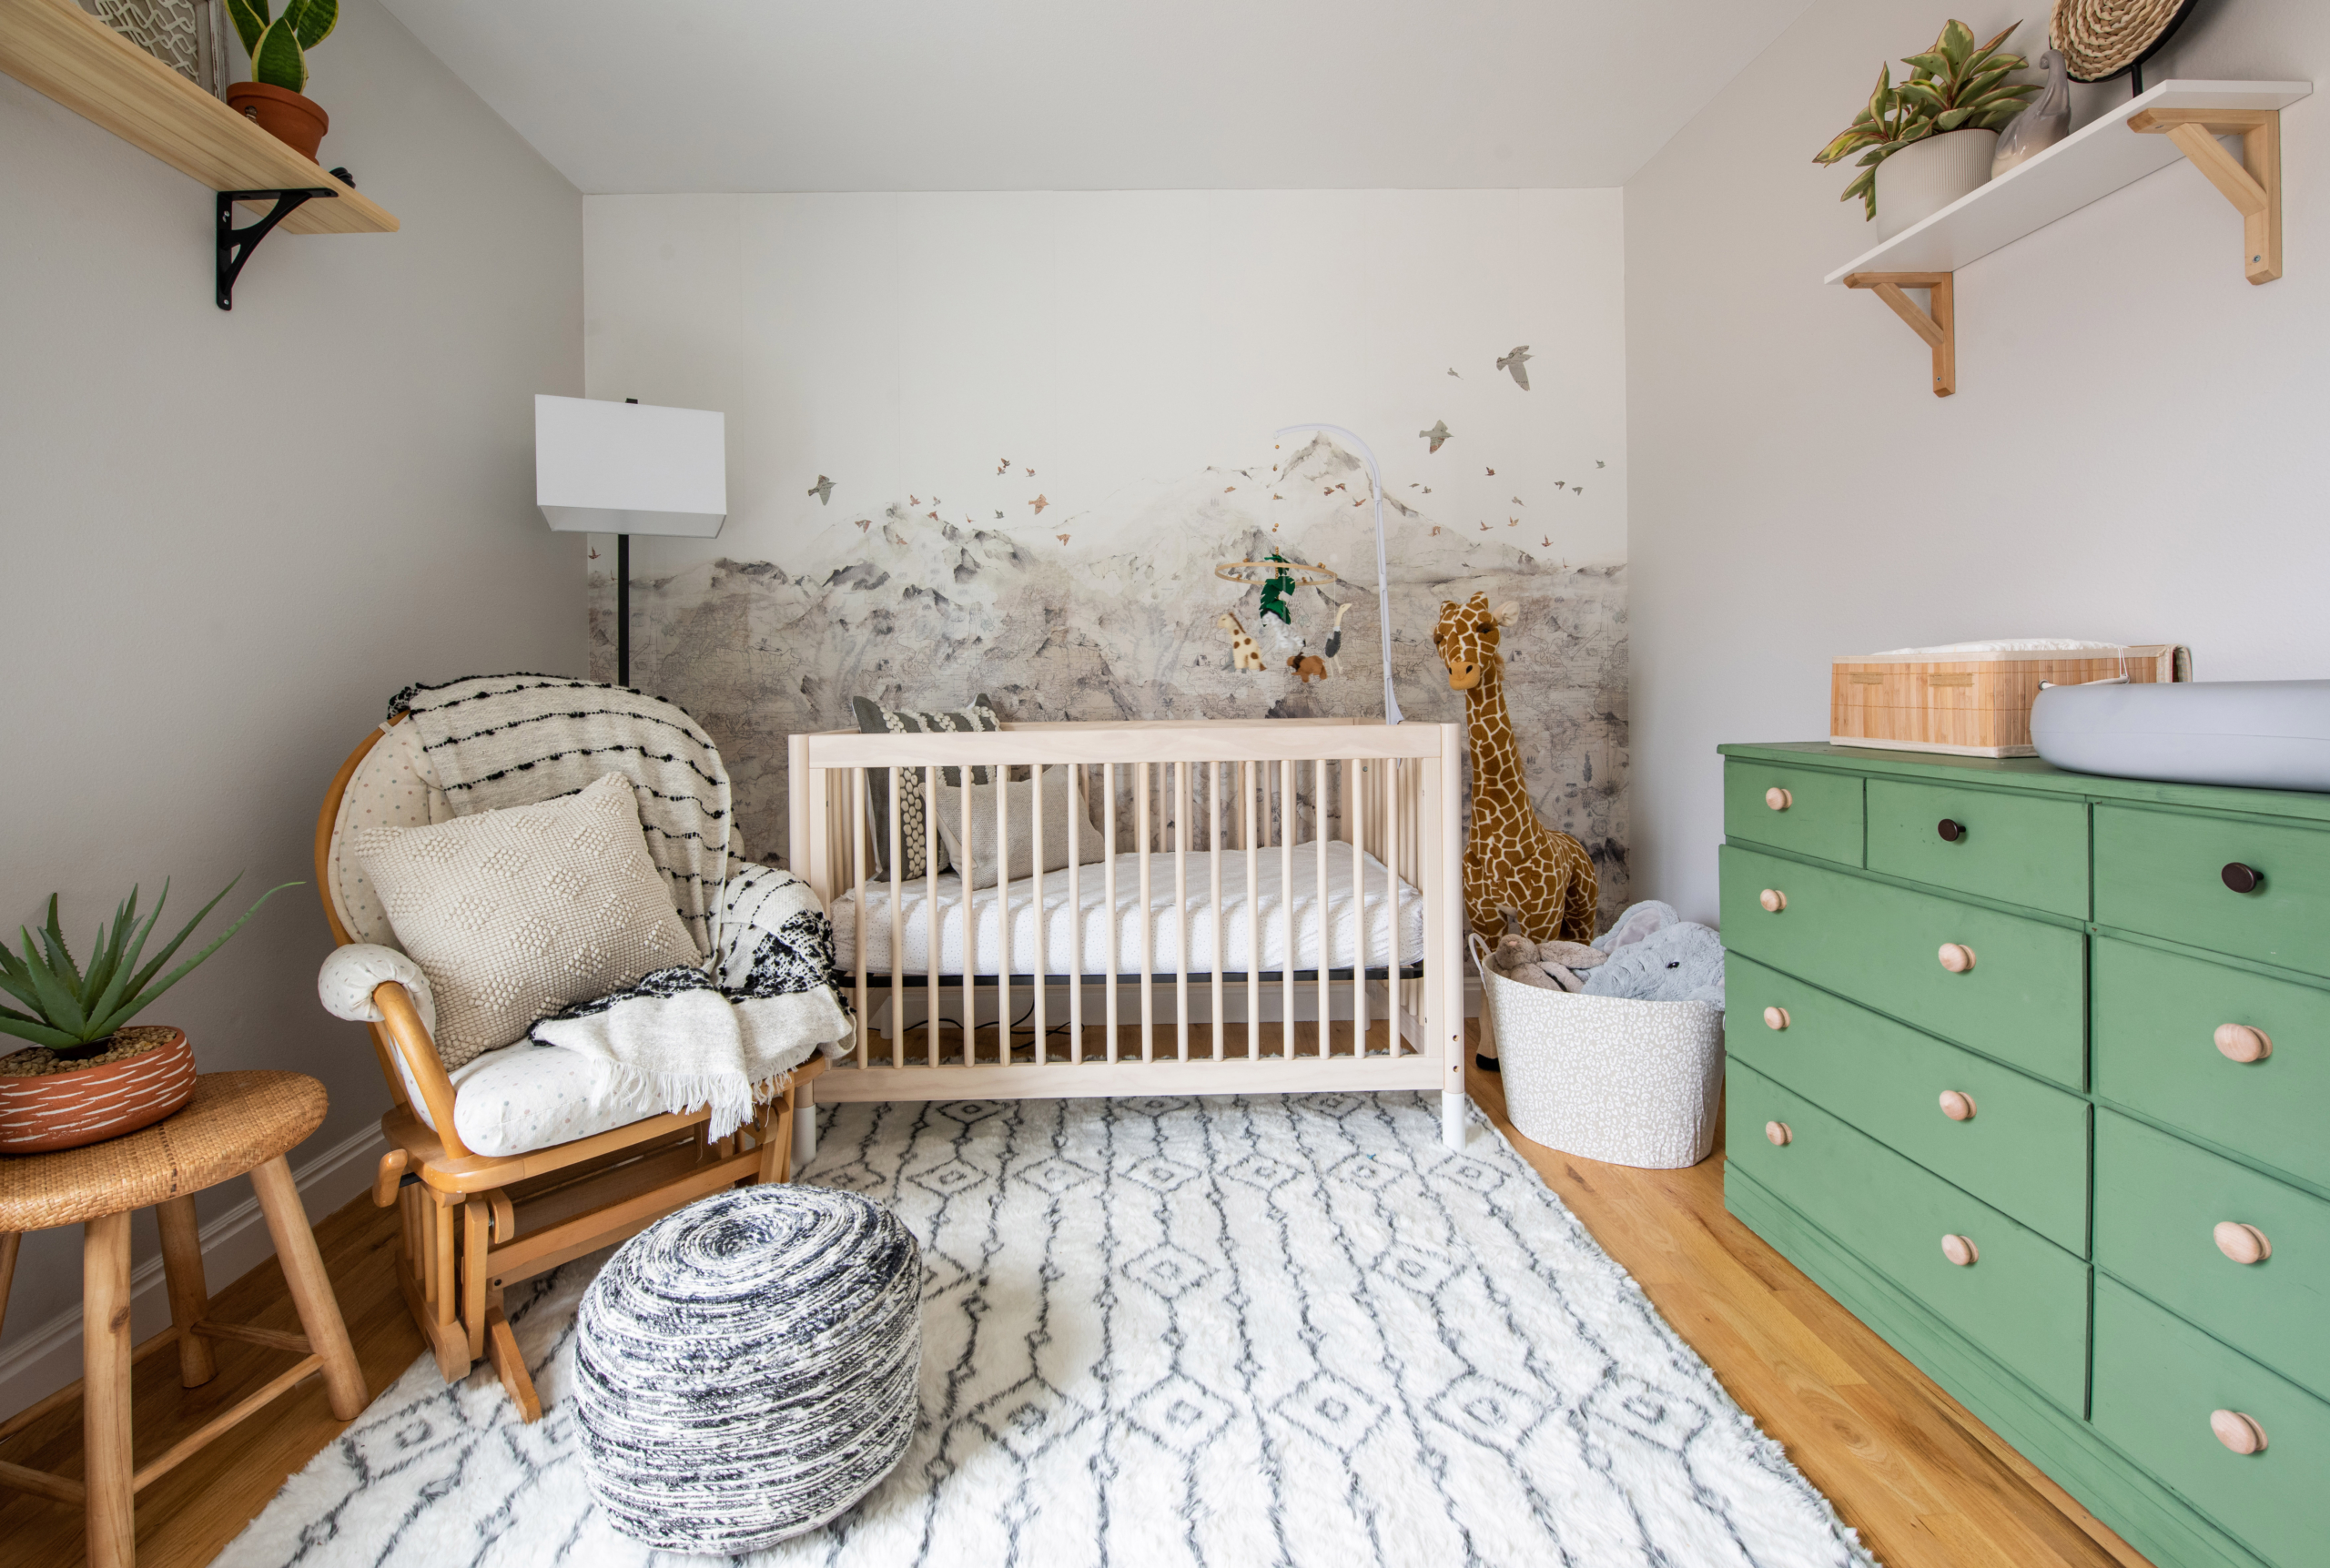 Safari nursery in Louisville CO with green dresser, global accents and mountain wallpaper with birds